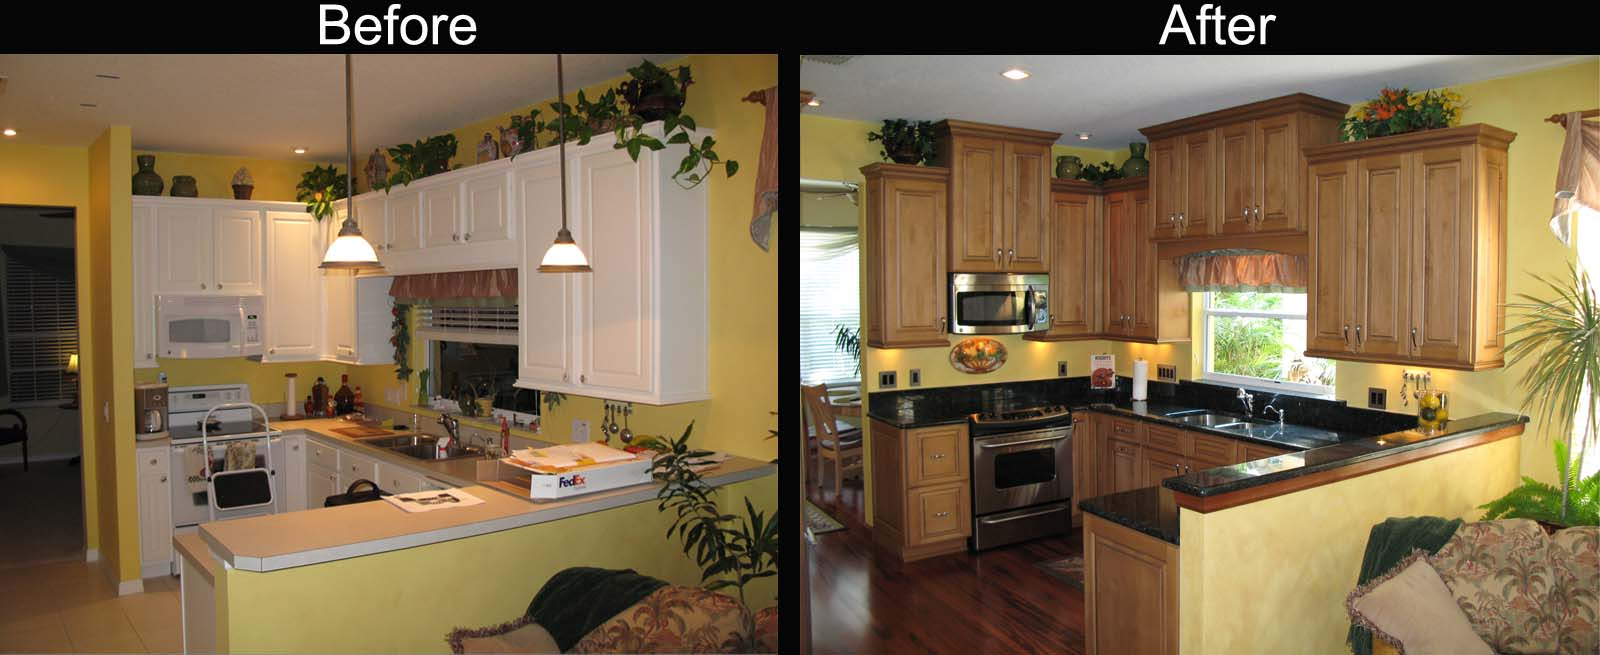 Kitchen decor kitchen remodel before and after for Kitchen cupboard makeover before and after